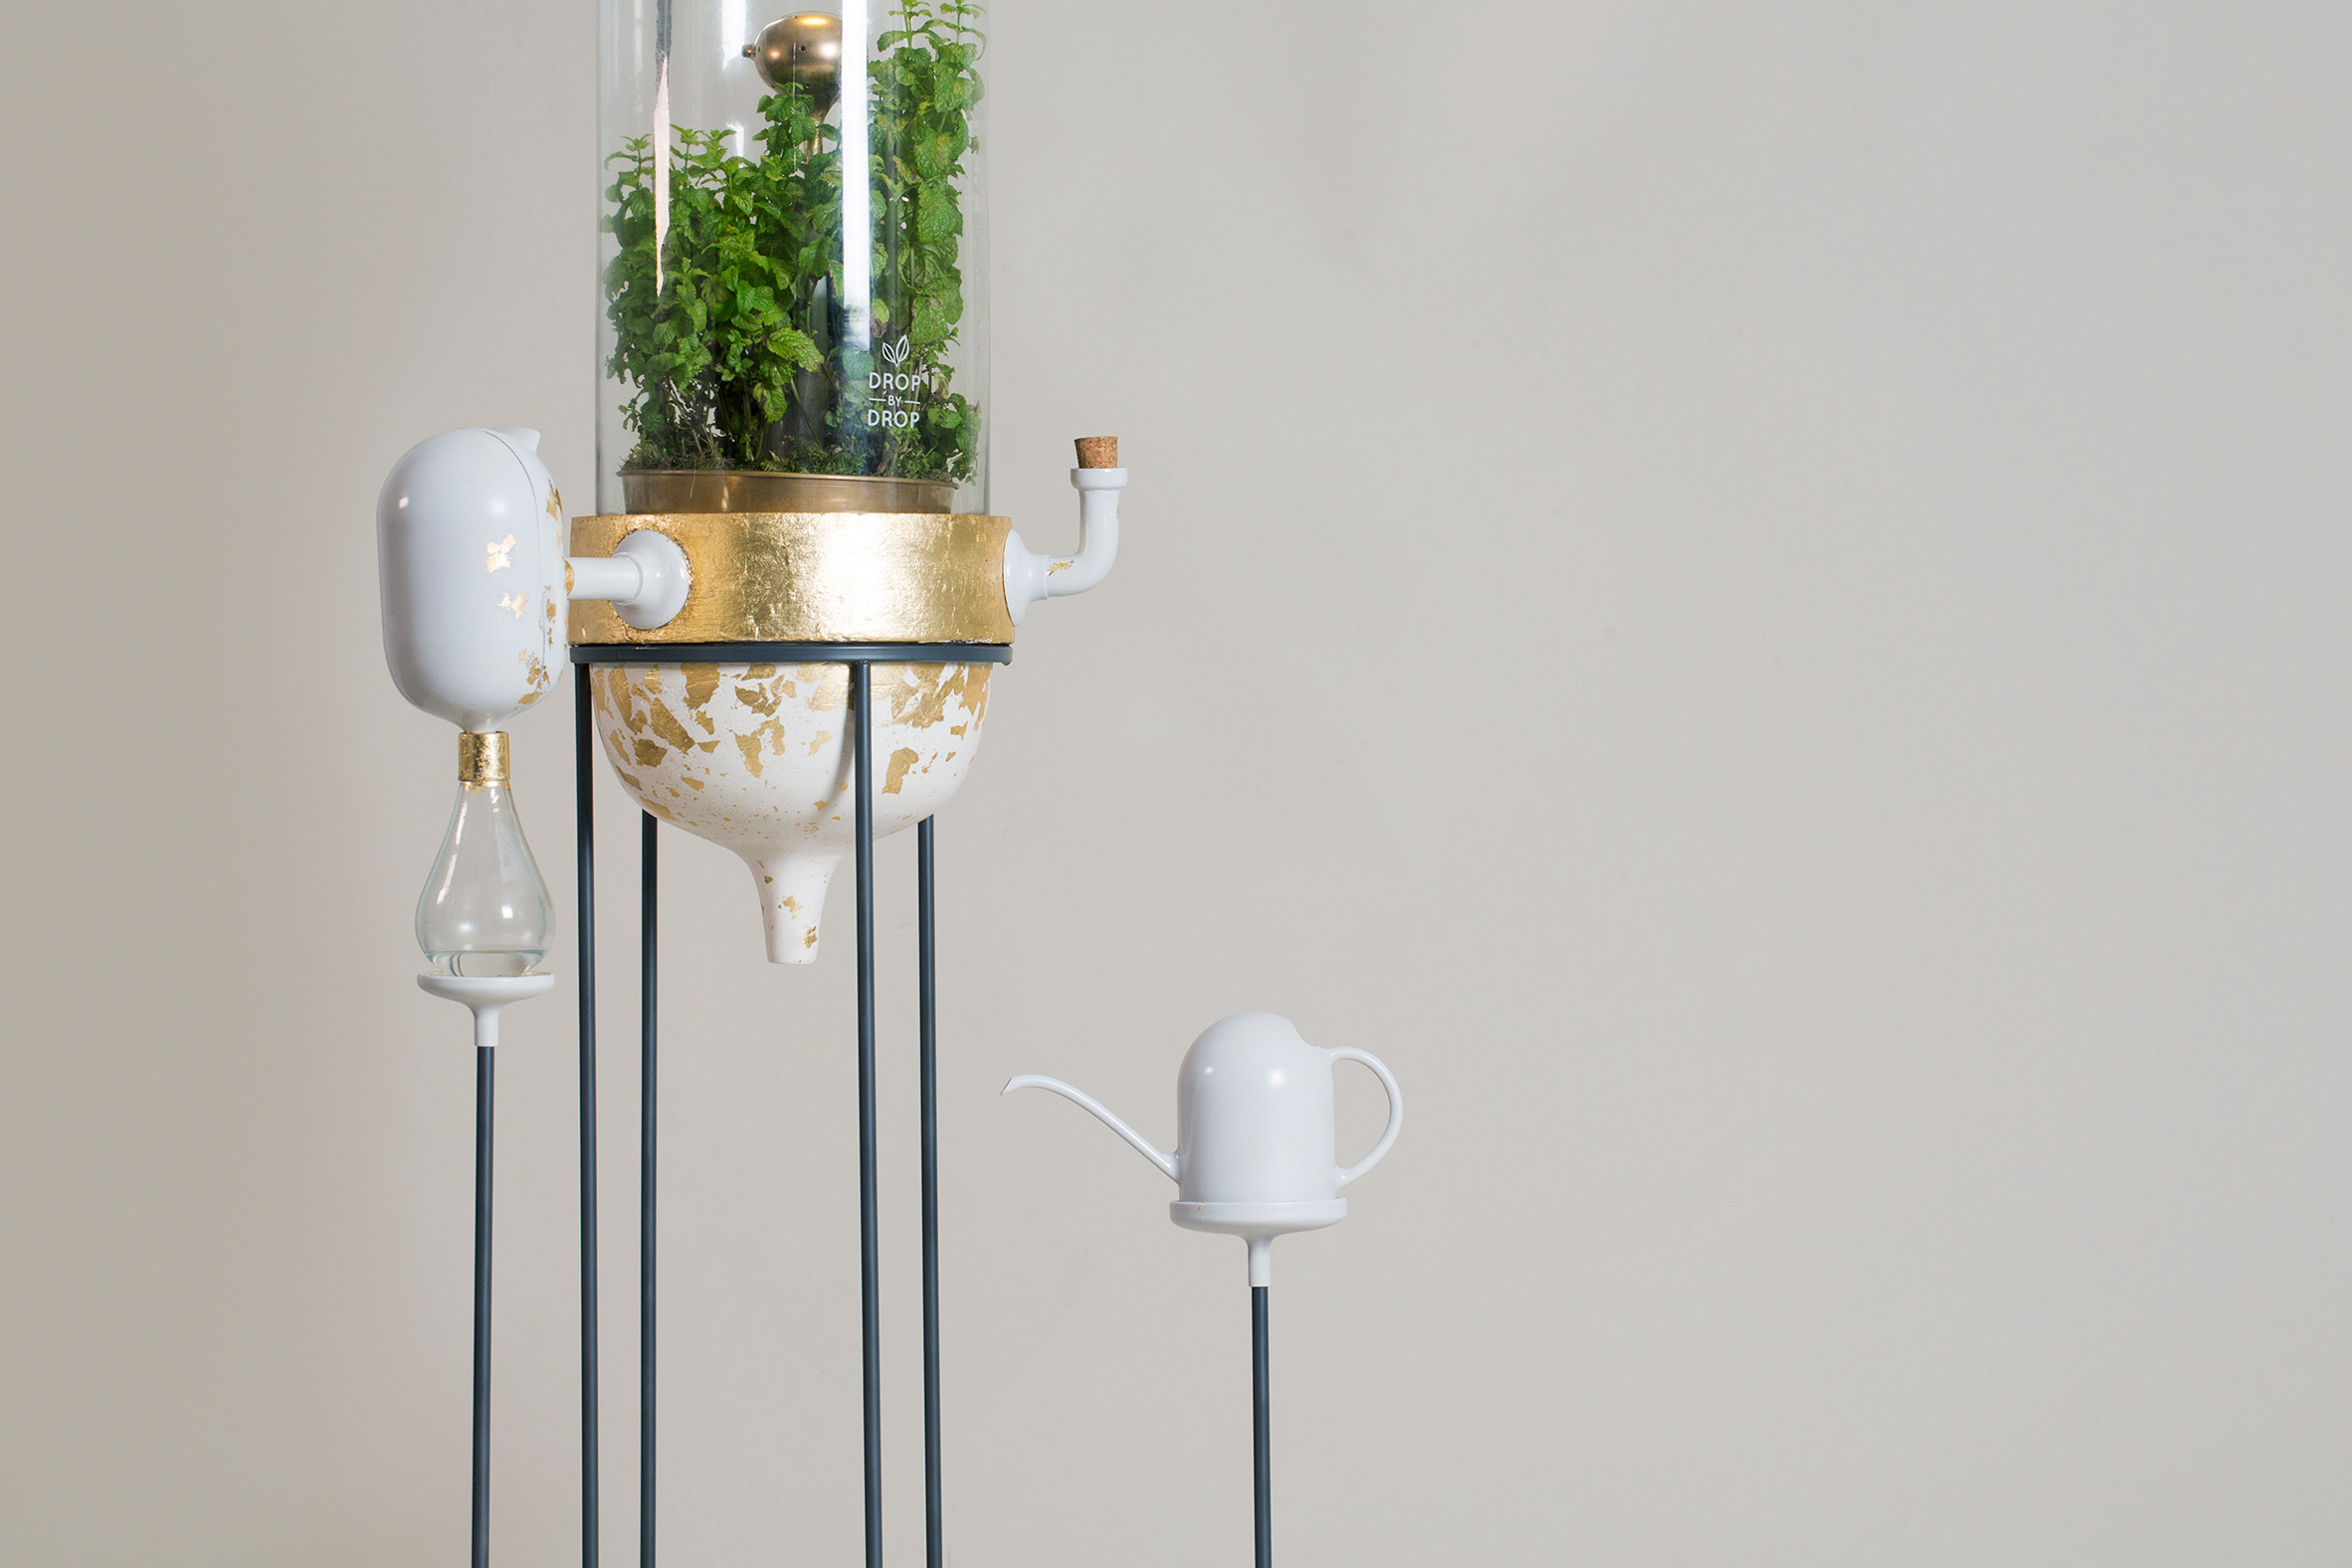 Drop by Drop is a plant-based water filter that works as a mini Amazon